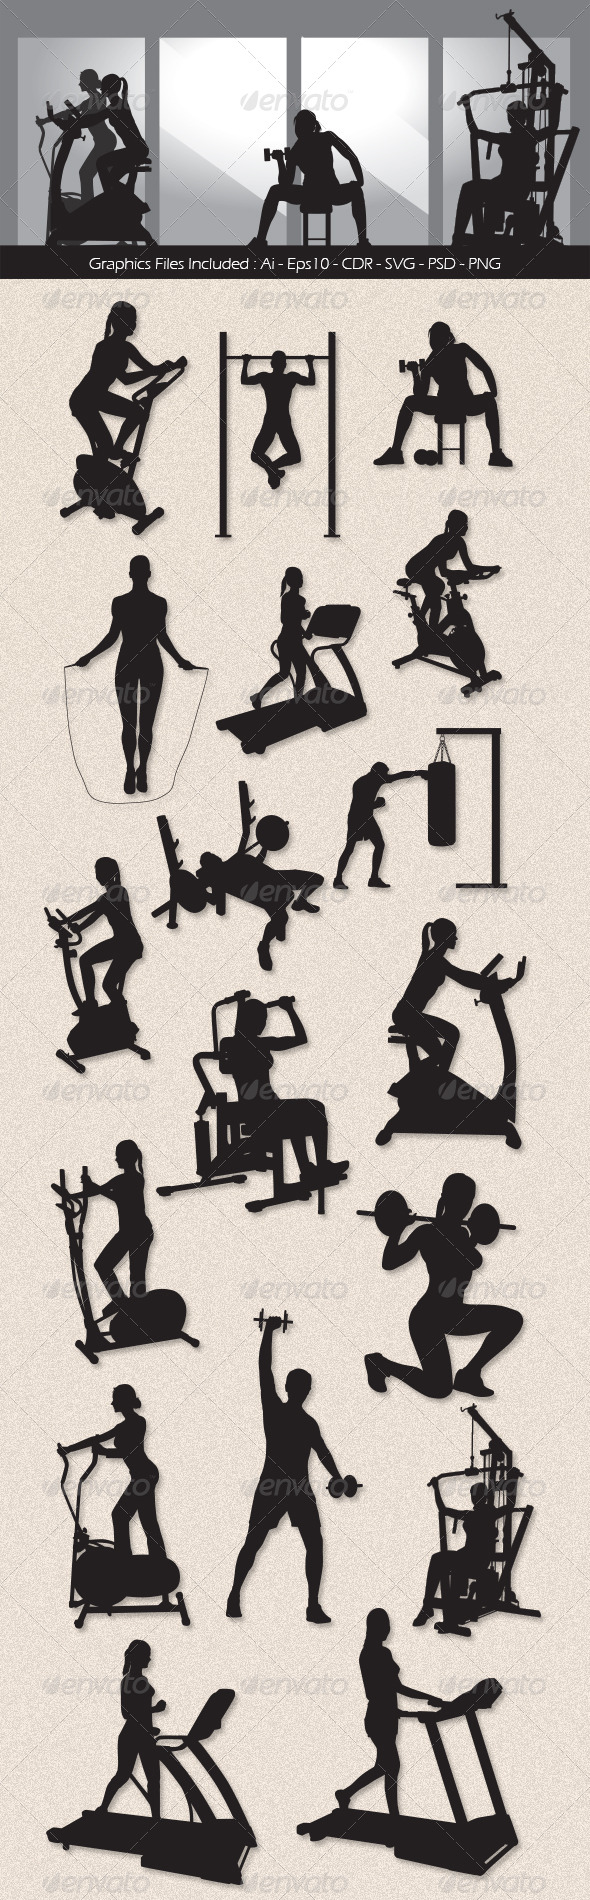 GraphicRiver Workout Silhouettes 7167530